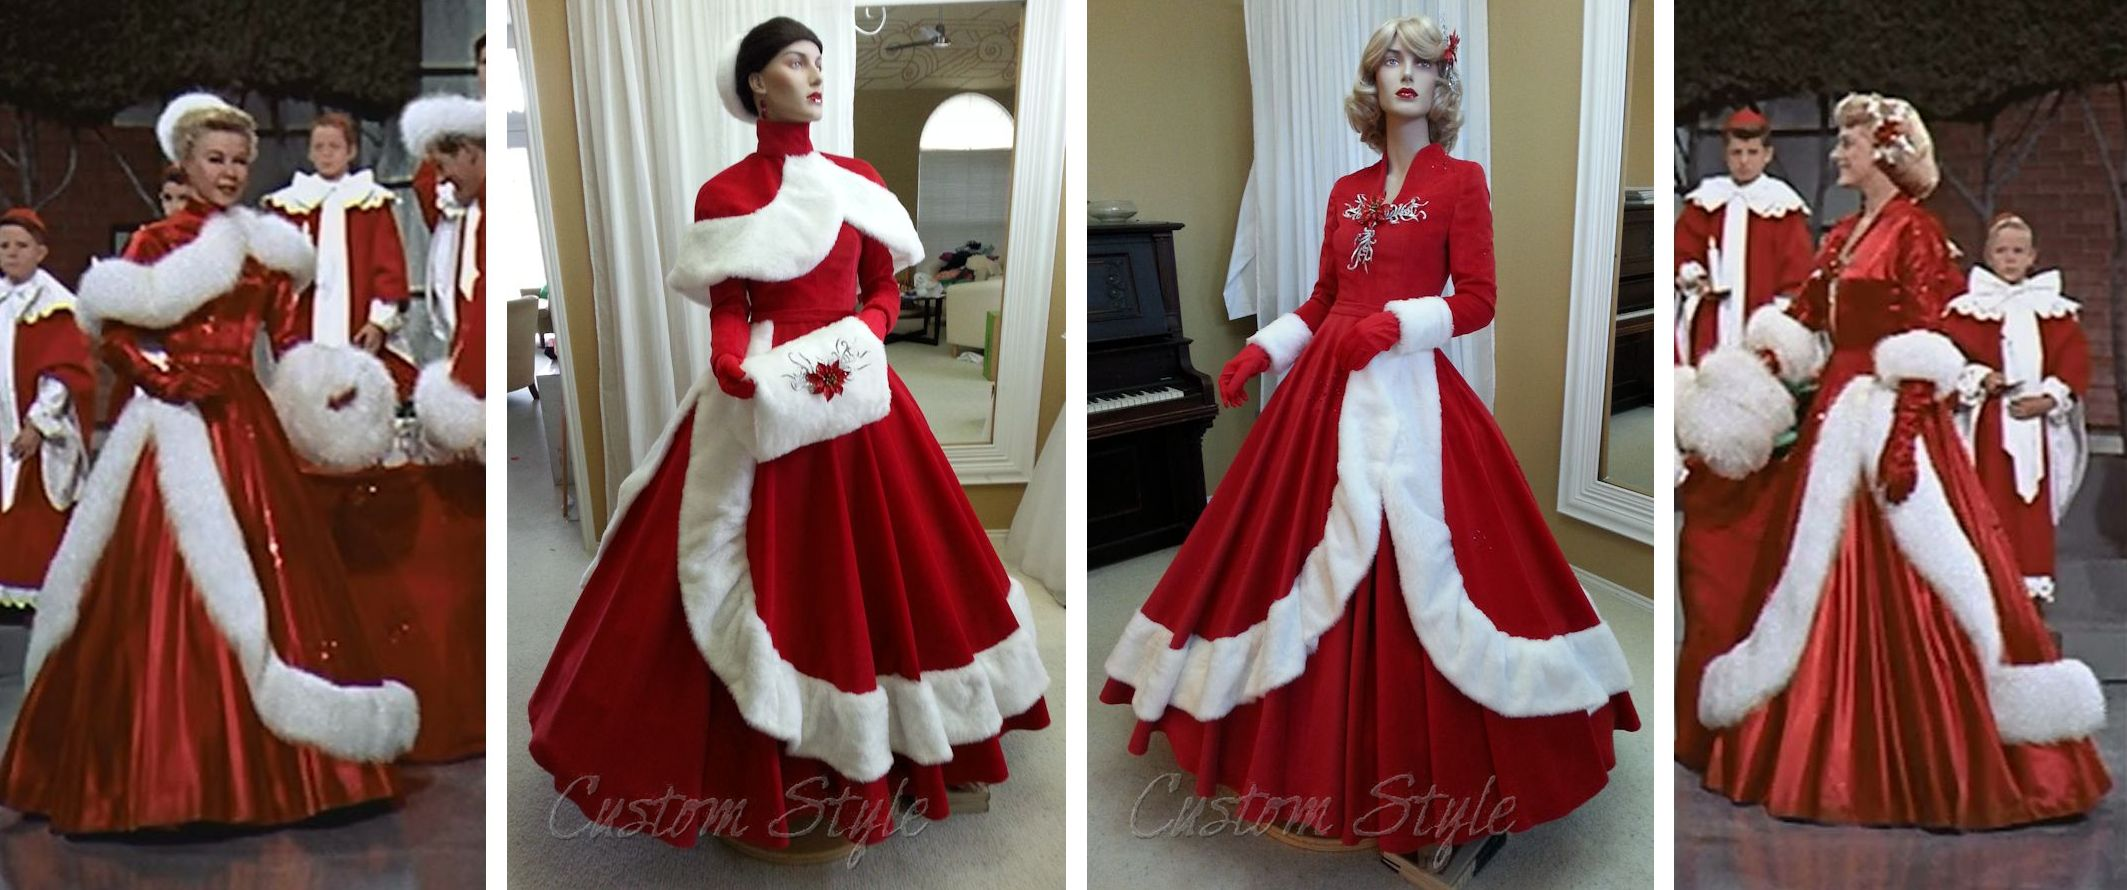 87111dfffeb08 White Christmas Dresses for The Fantasy of Lights | Custom Style